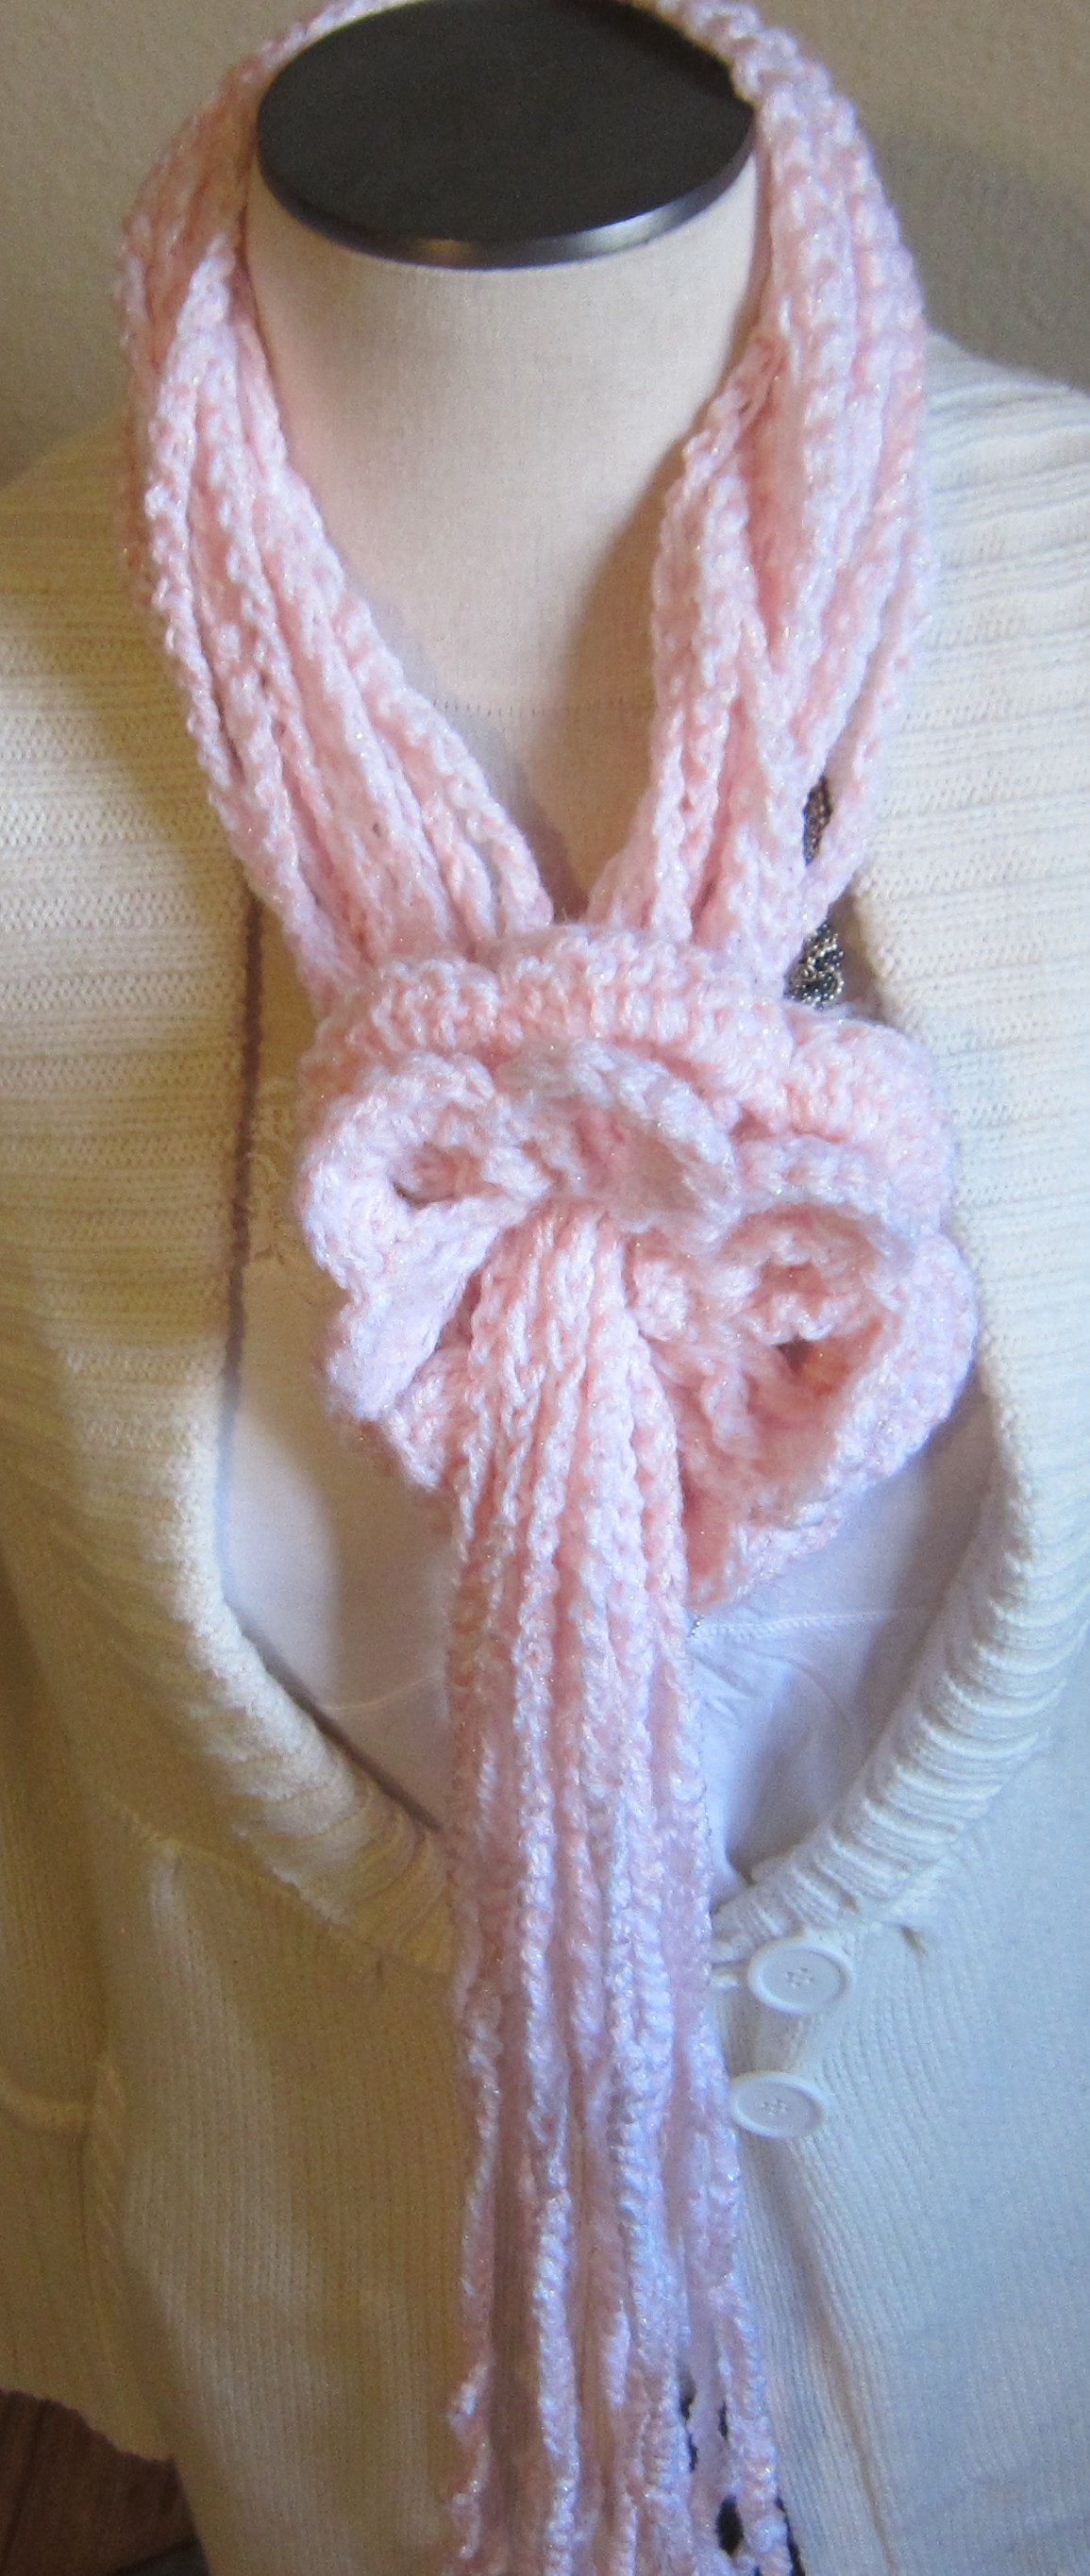 how to make a flower out of a scarf